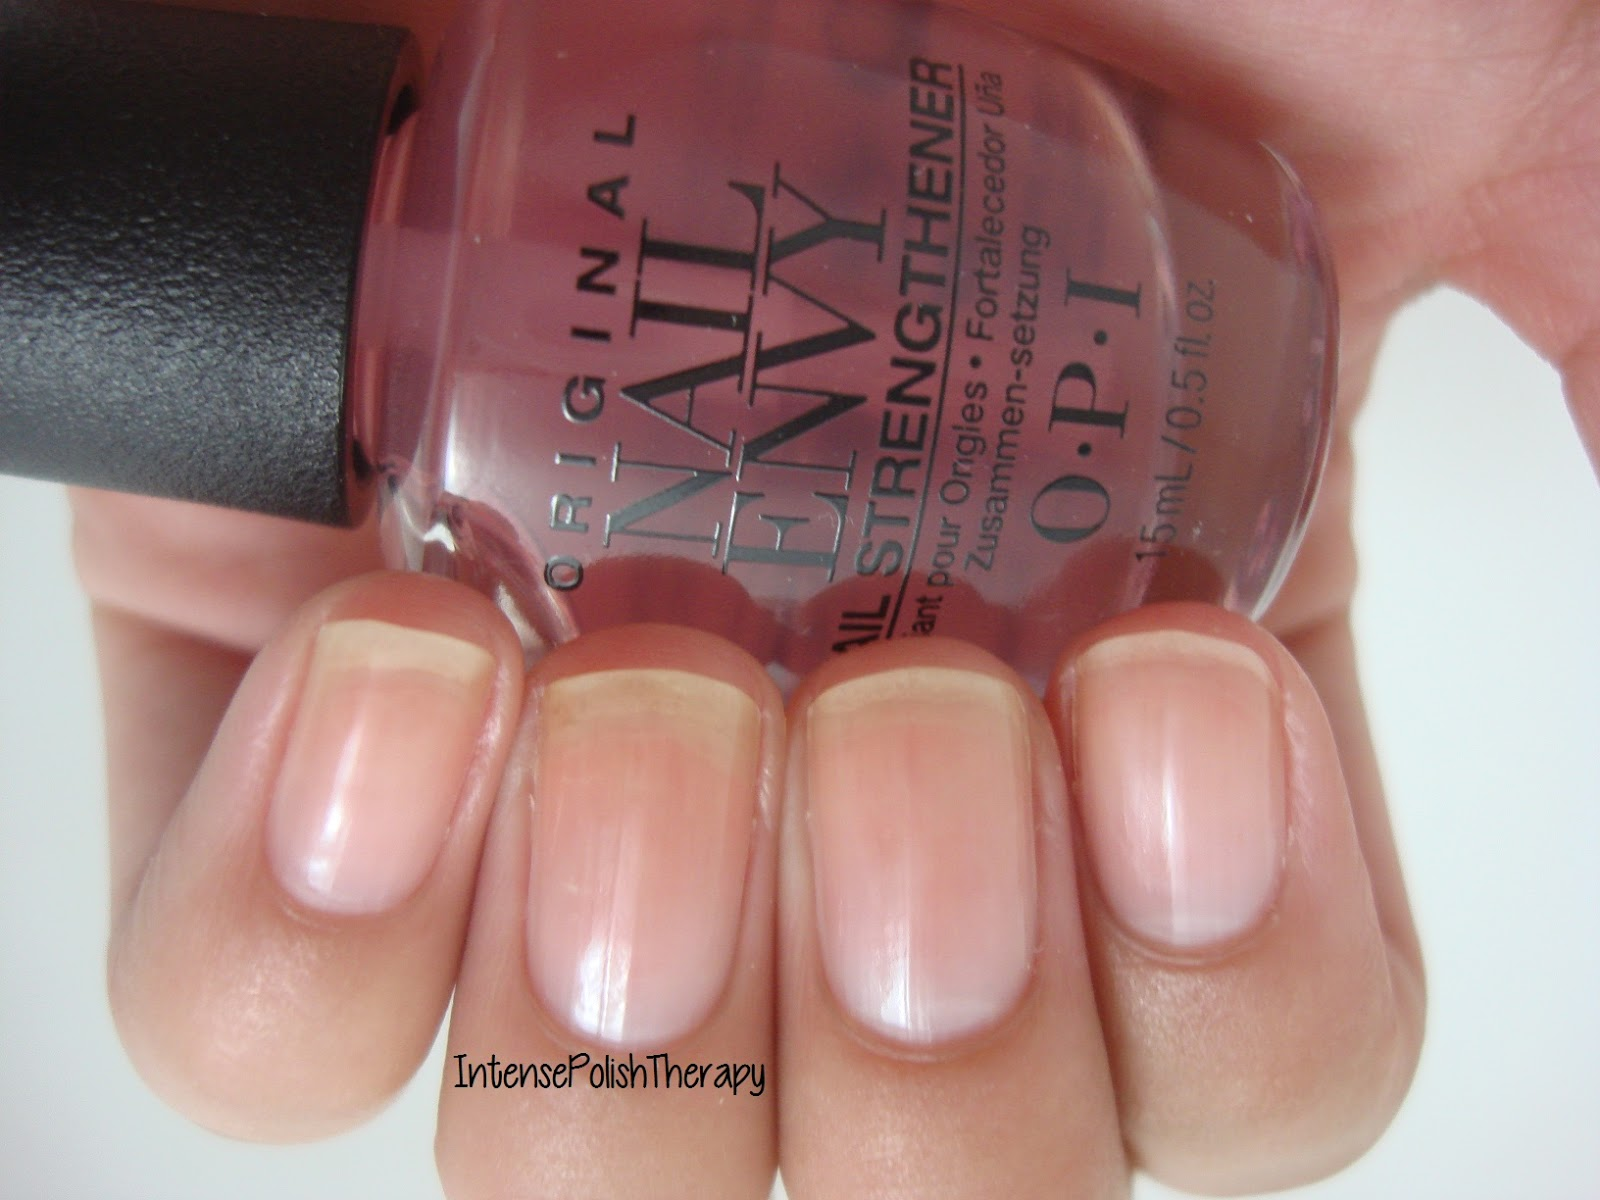 Intense Polish Therapy: OPI | Nail Envy - Strength + Colour SWATCHES